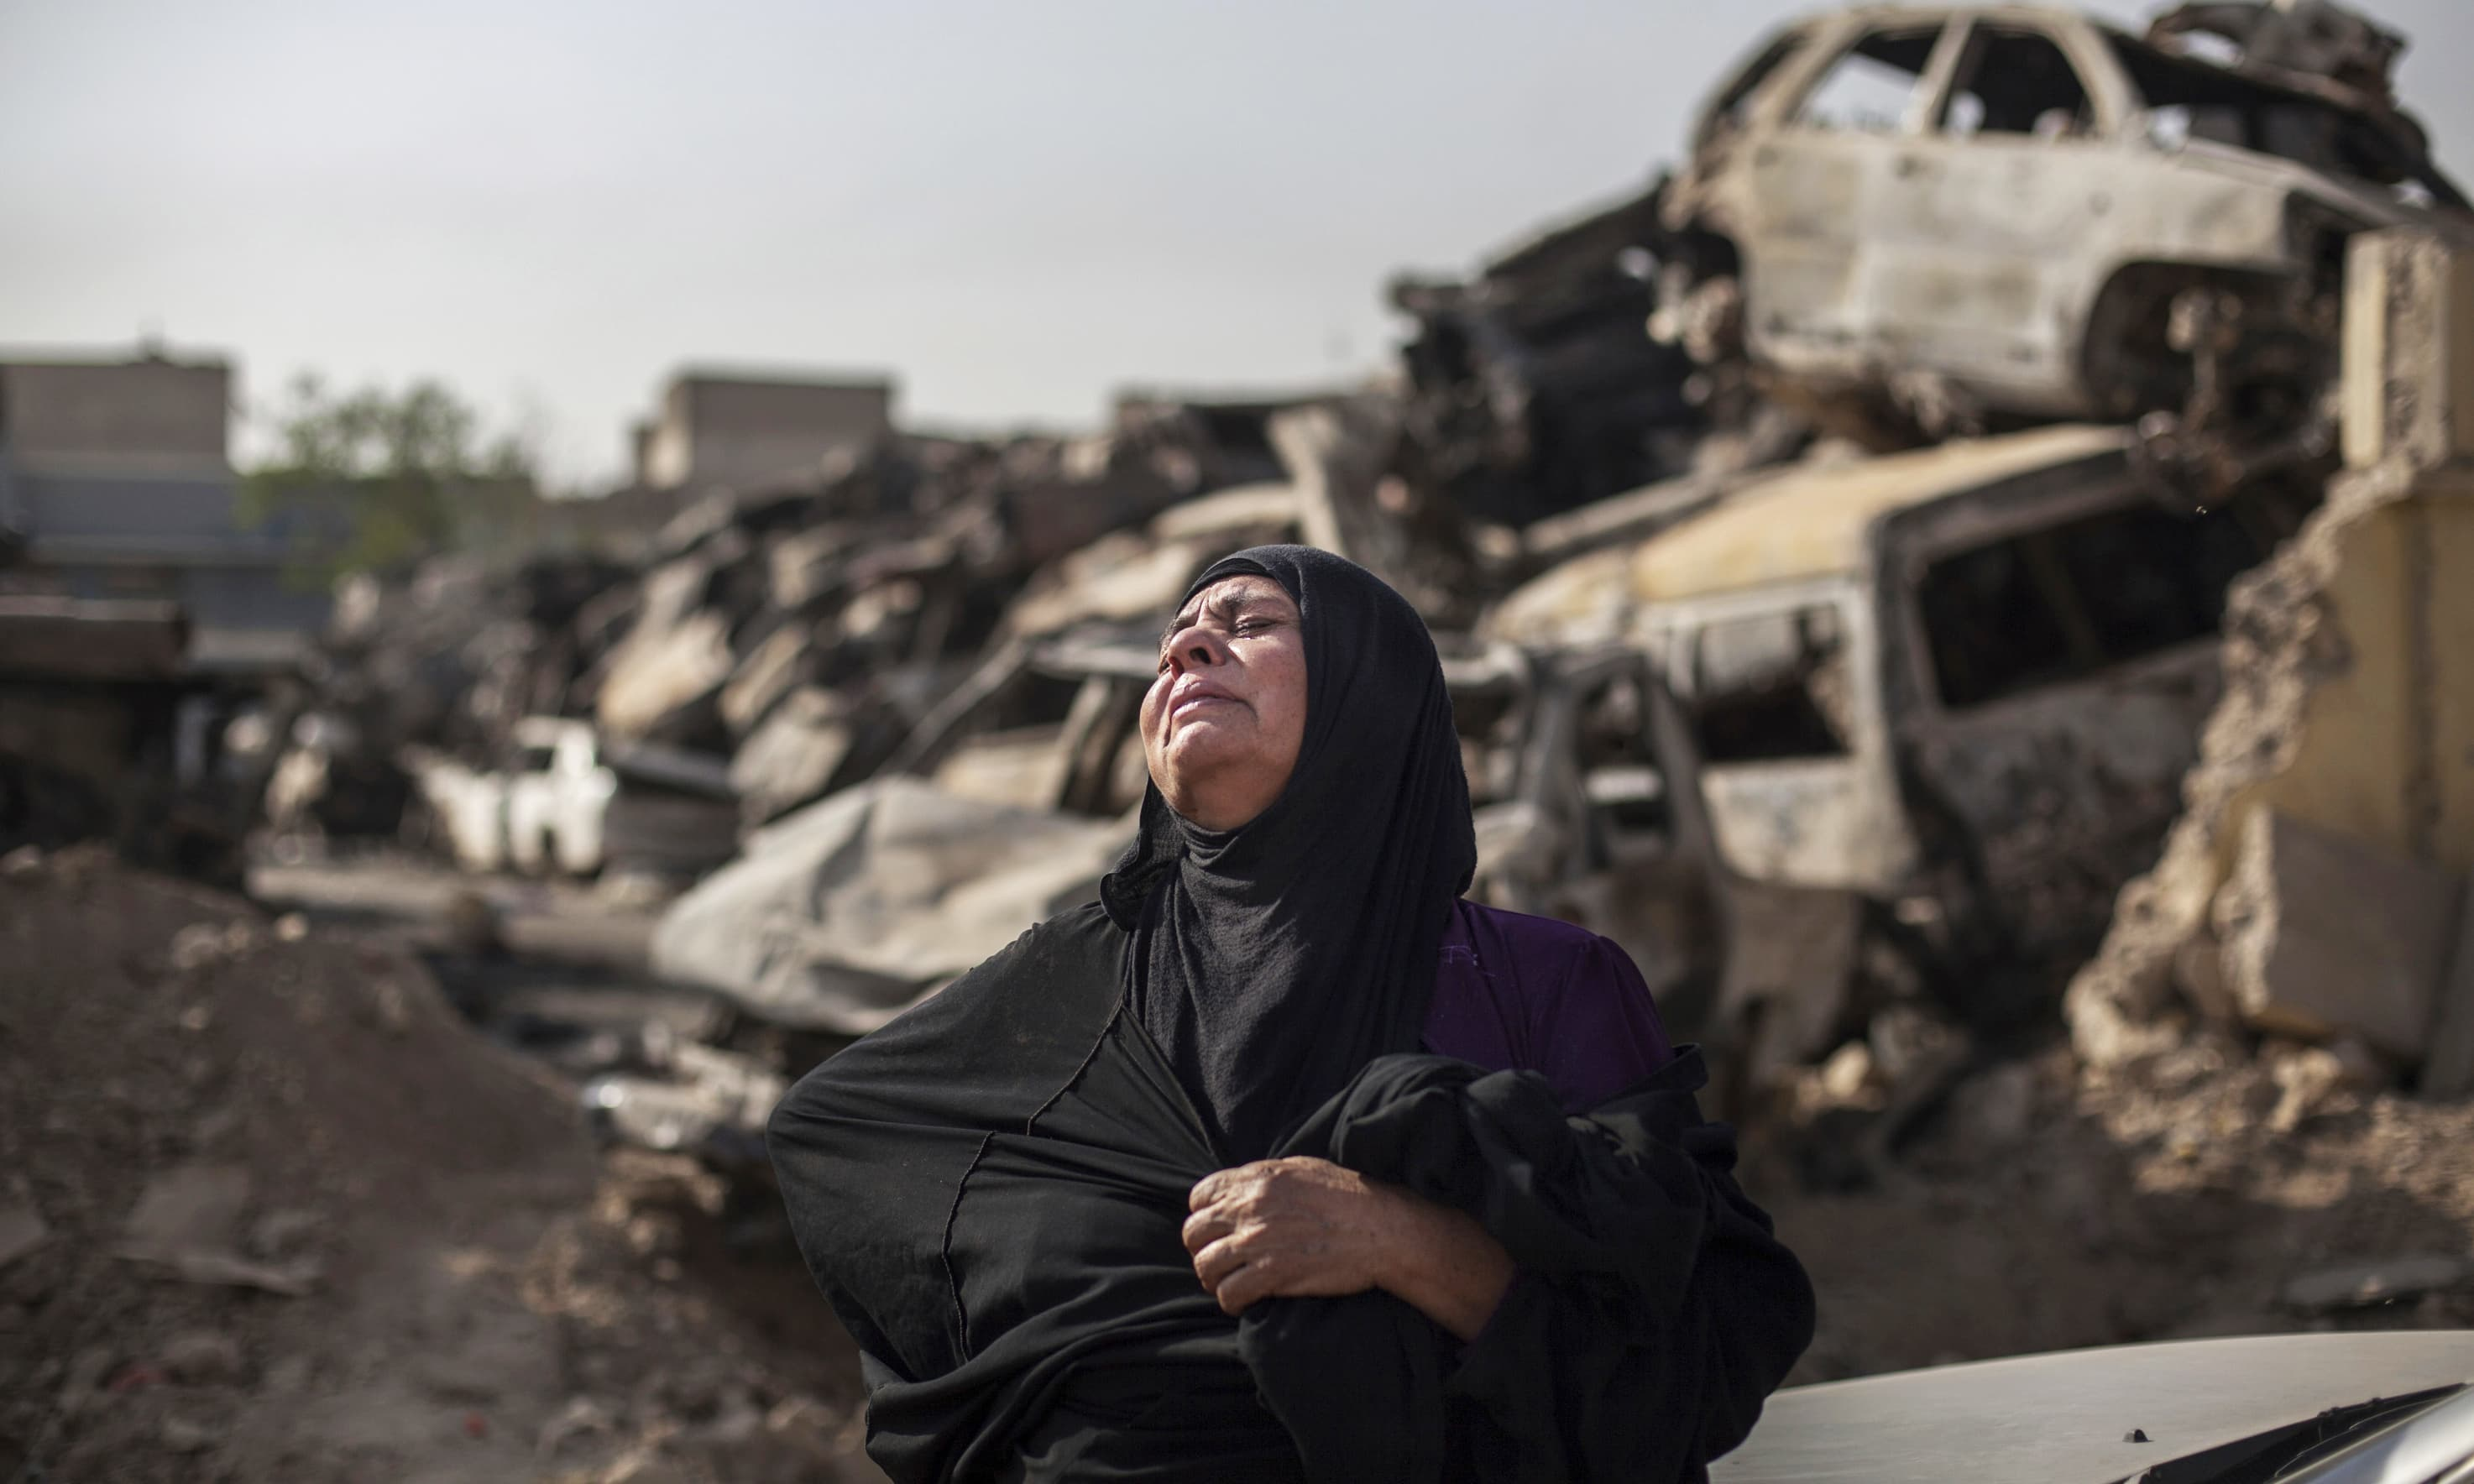 Fatima Ahmed Aswad cries as the body of her 15-year-old daughter Sana is exhumed in Mosul for forensic investigation in order to receive a death certificate. —AP